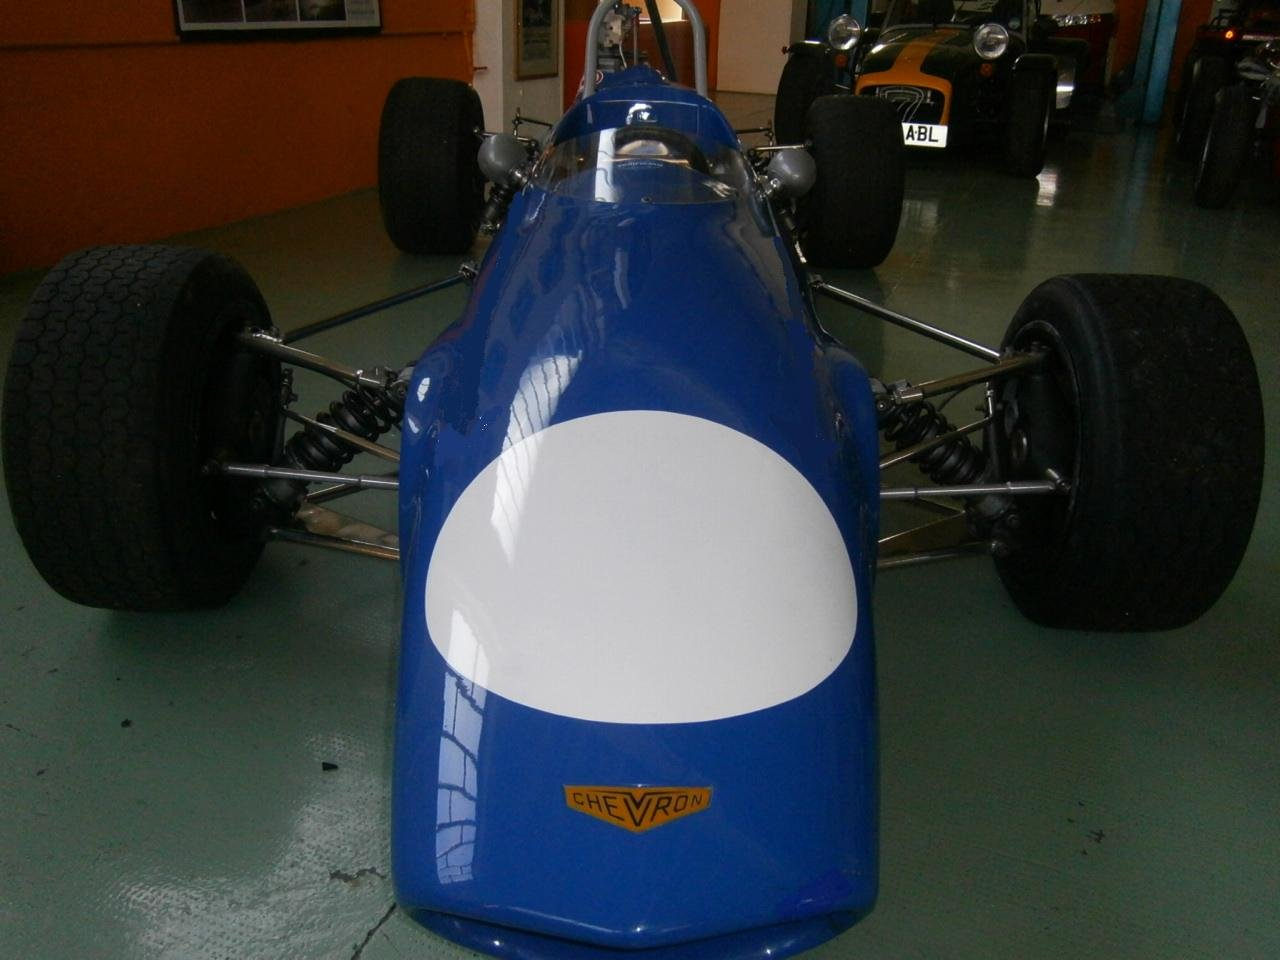 CHEVRON B9 F3 - 1968 For Sale (picture 2 of 6)